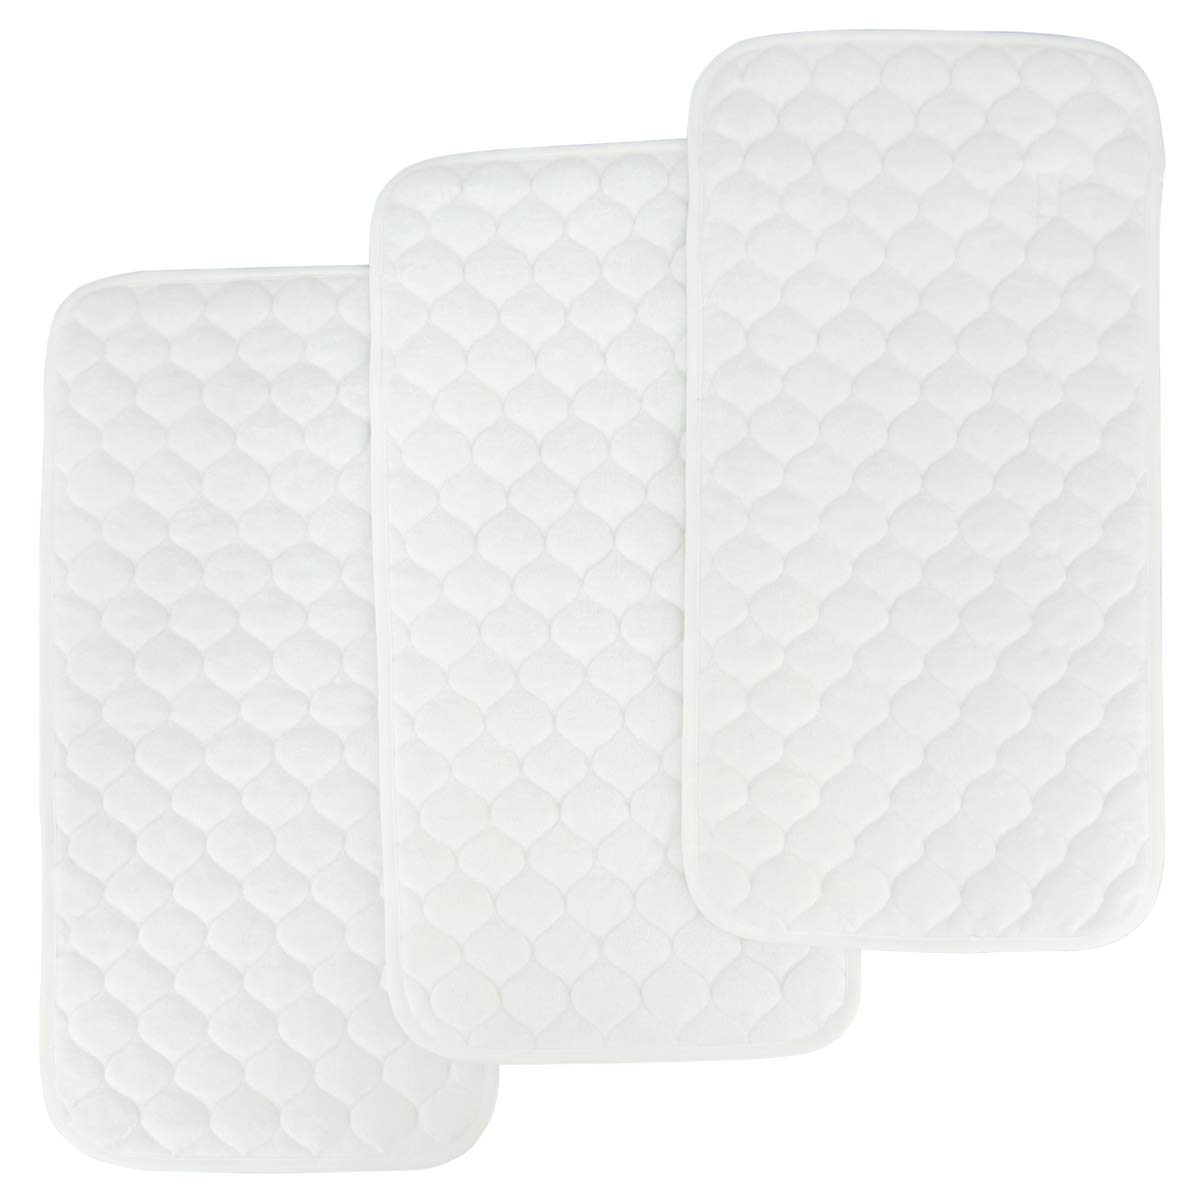 Bamboo Quilted Thicker Waterproof Changing Pad Liners 6 Count by BlueSnail 13 X 27 INCH (white)